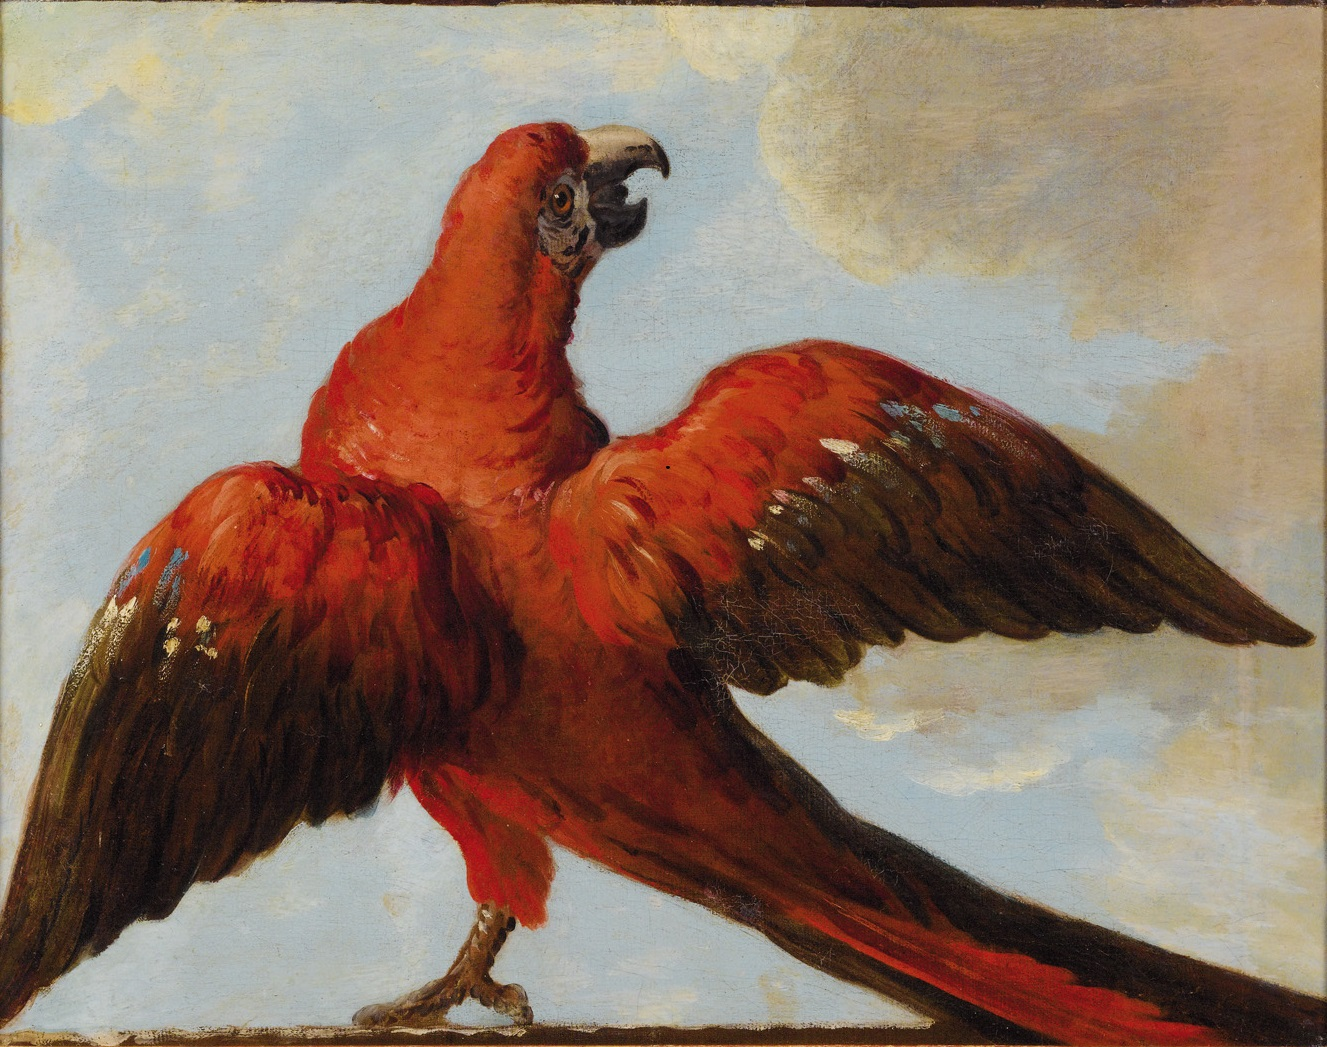 https://upload.wikimedia.org/wikipedia/commons/c/c0/%27Parrot_with_Open_Wings%27%2C_attributed_to_Jean-Baptiste_Oudry.jpg